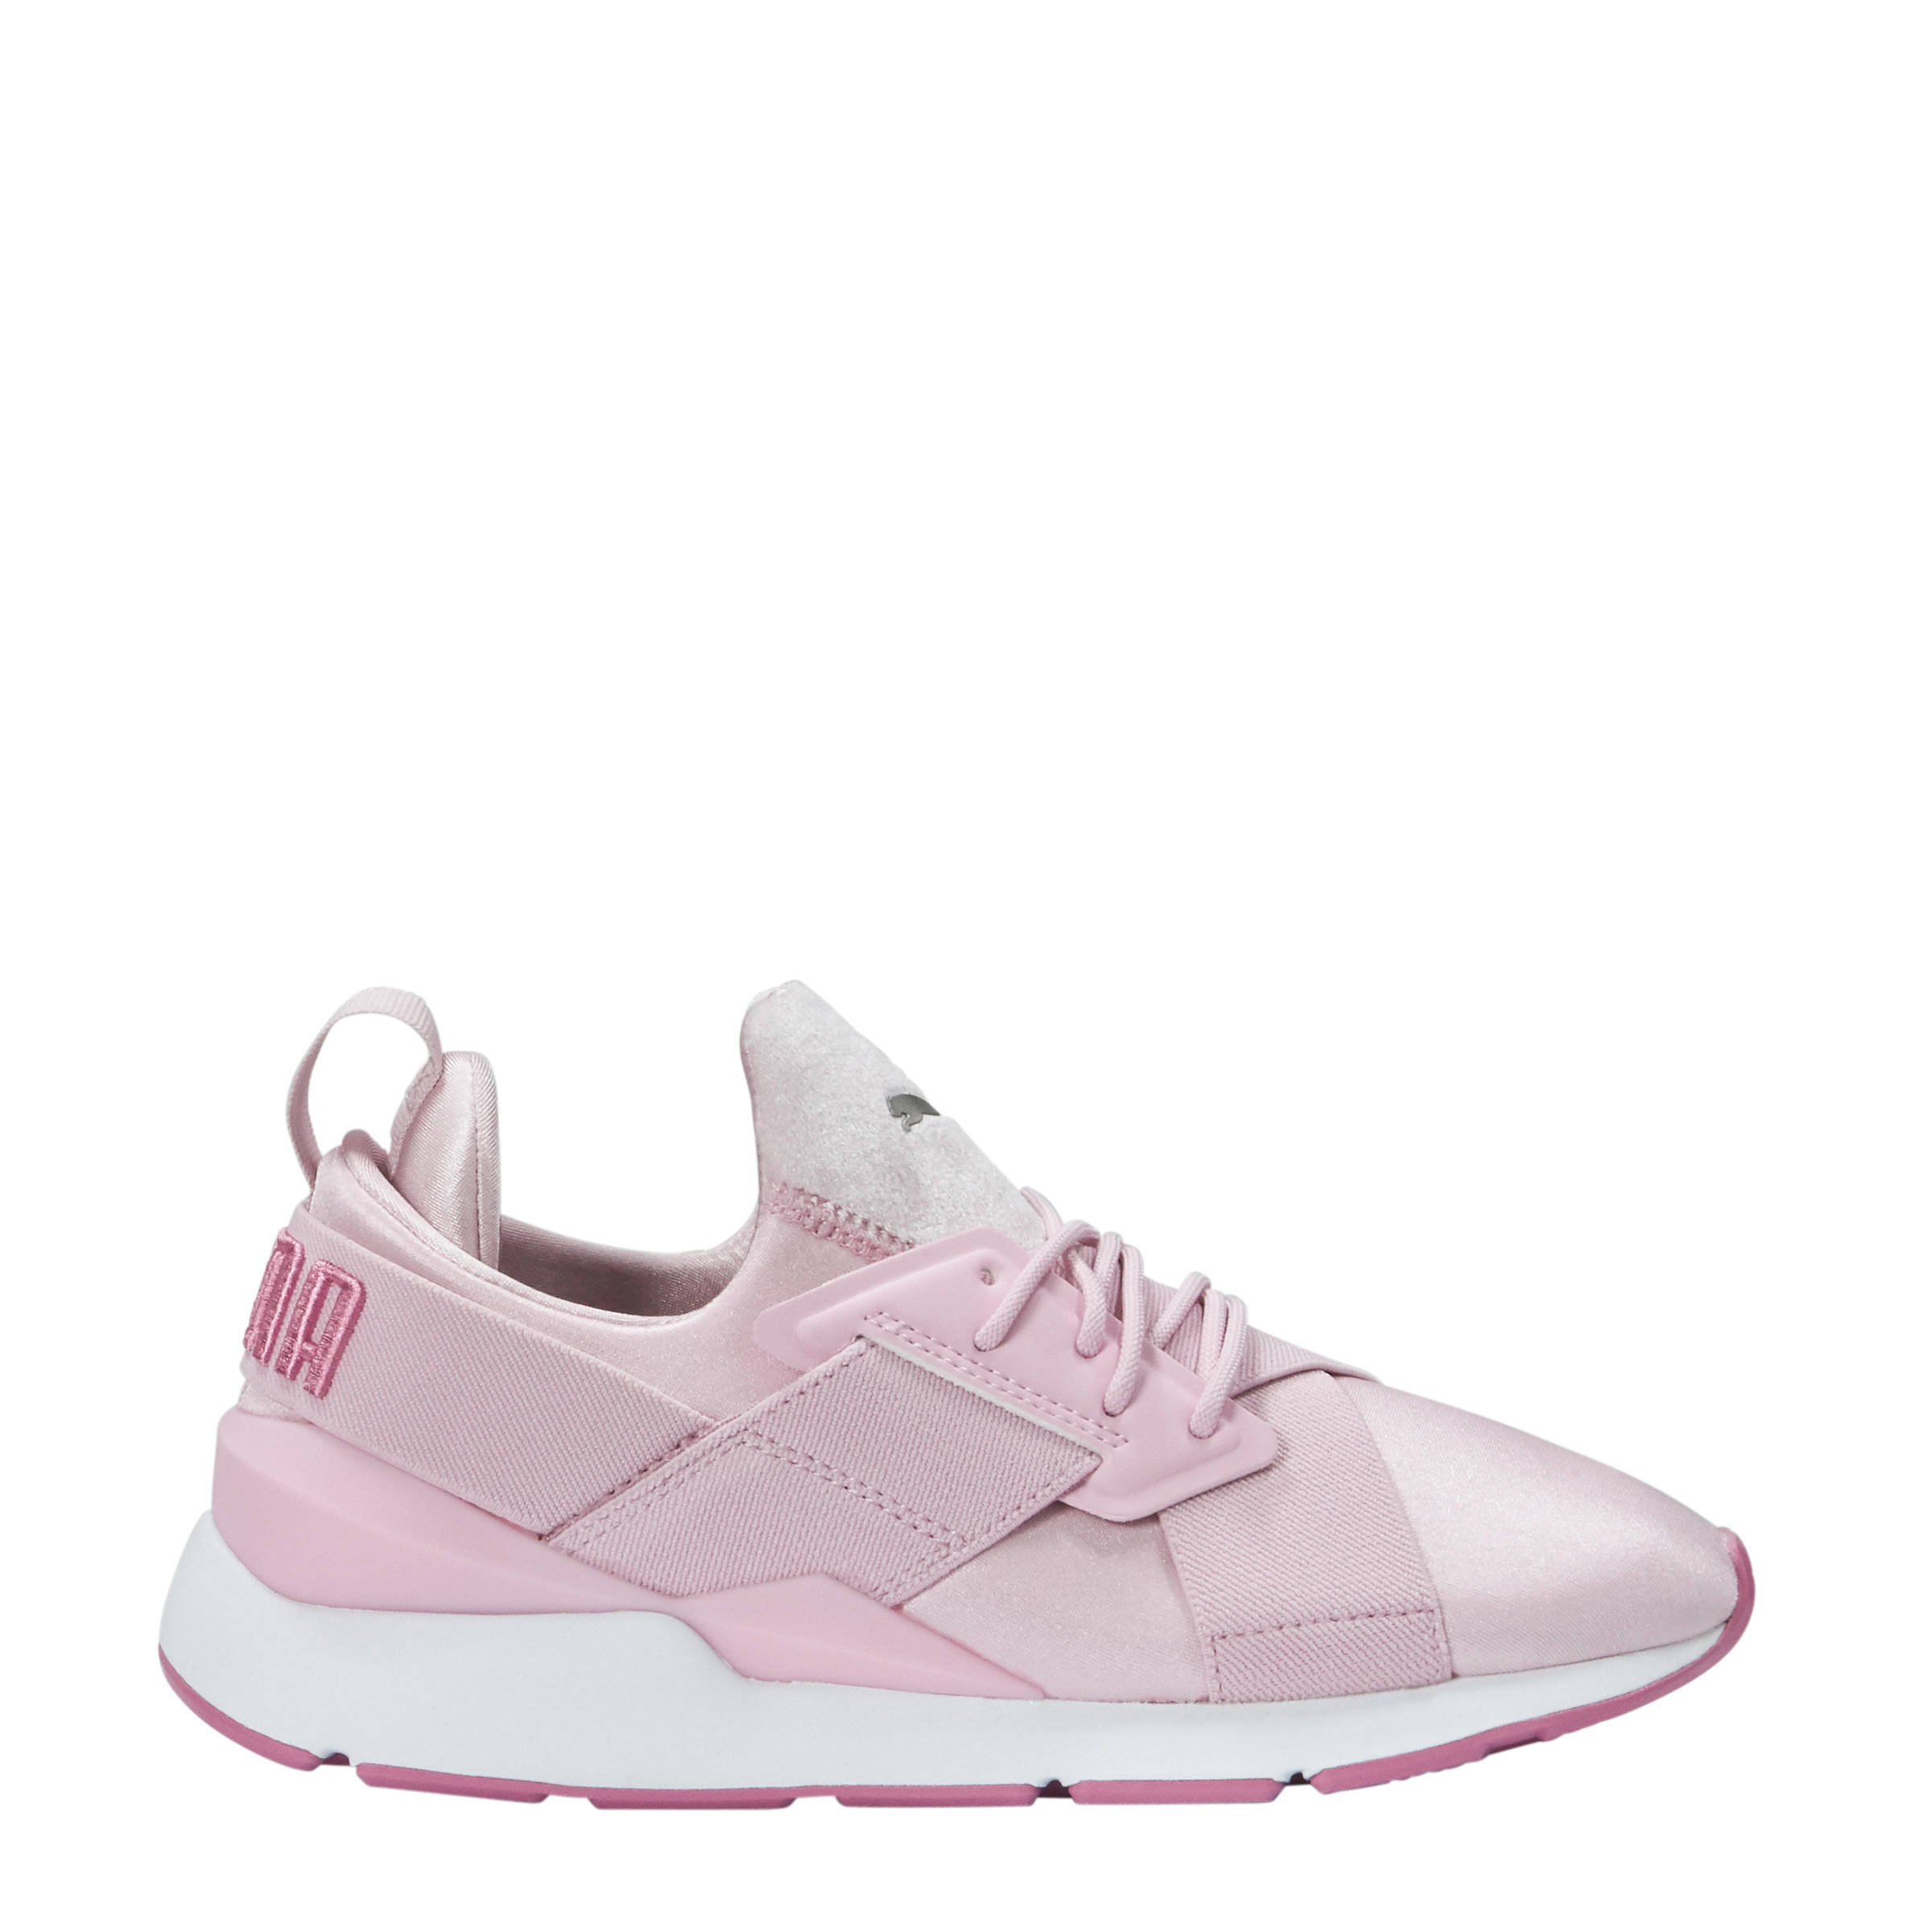 Muse Satin sneakers lichtroze